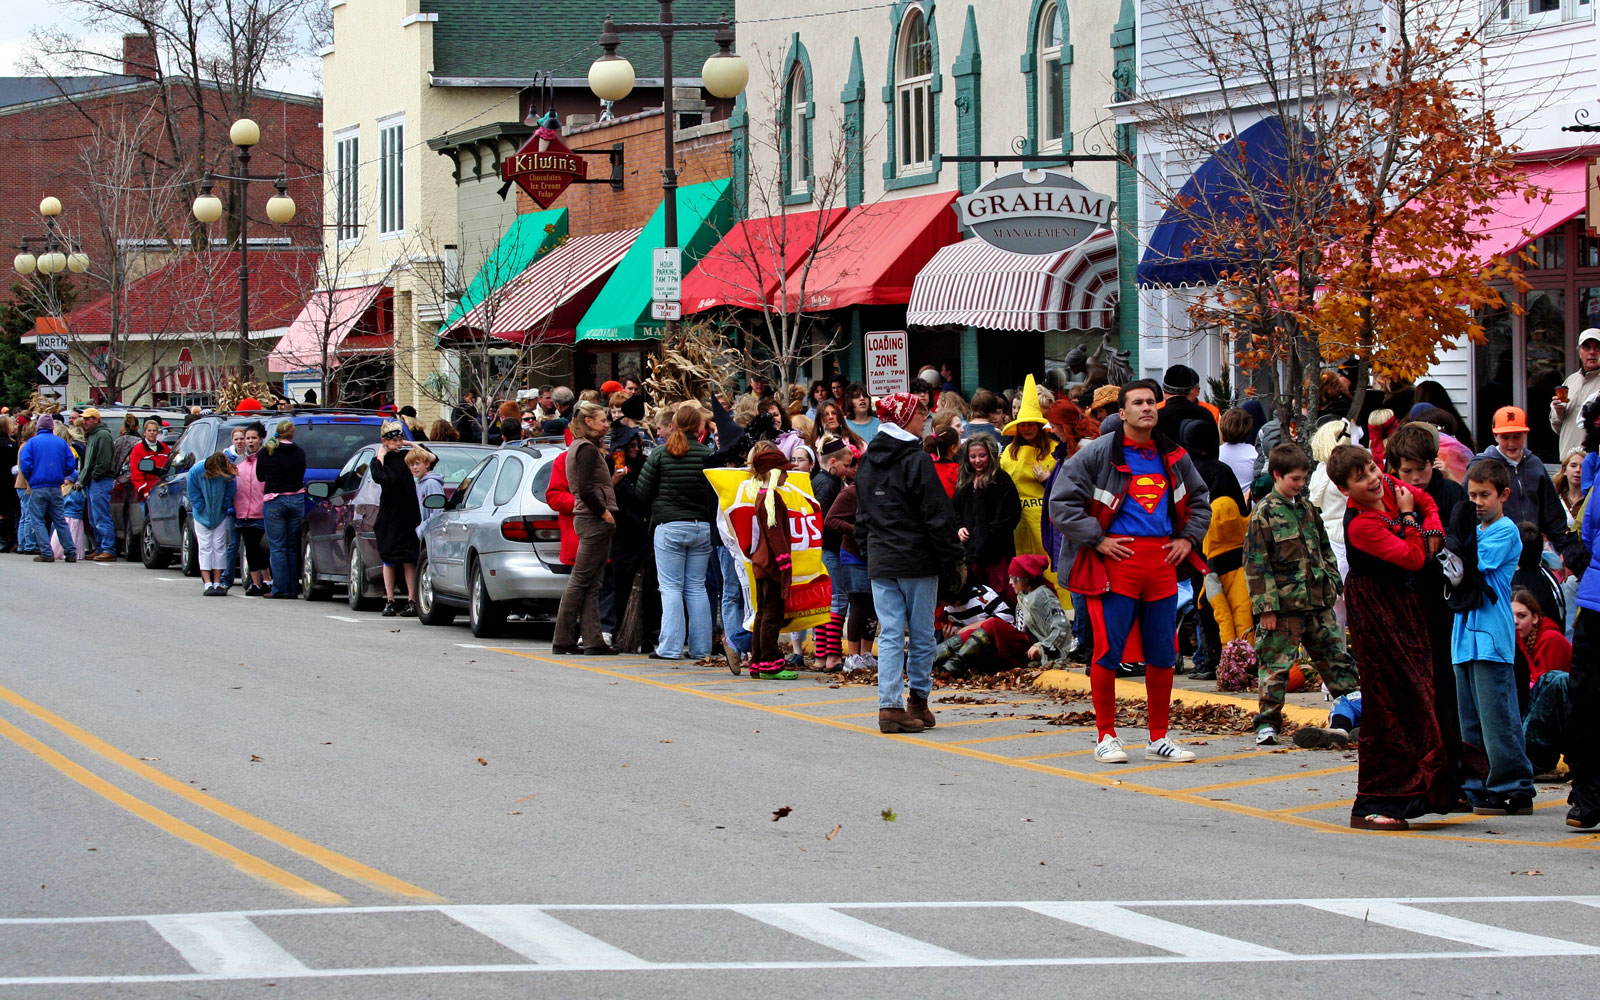 halloween parade in Harbor Springs, Michigan